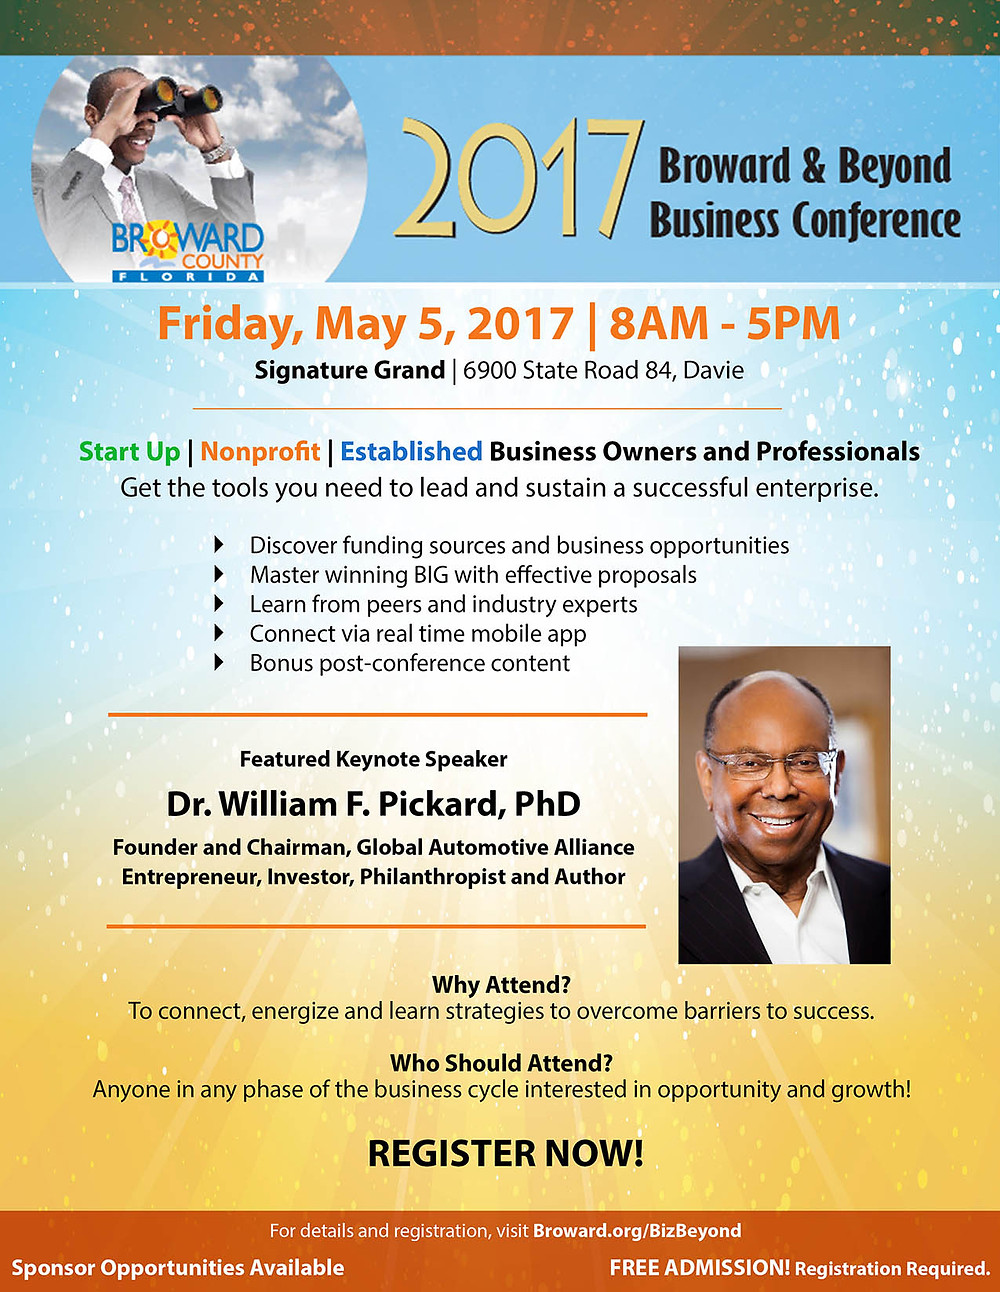 Xpand Now, Doing Business in the Middle East, Broward & Beyond Business Conference.